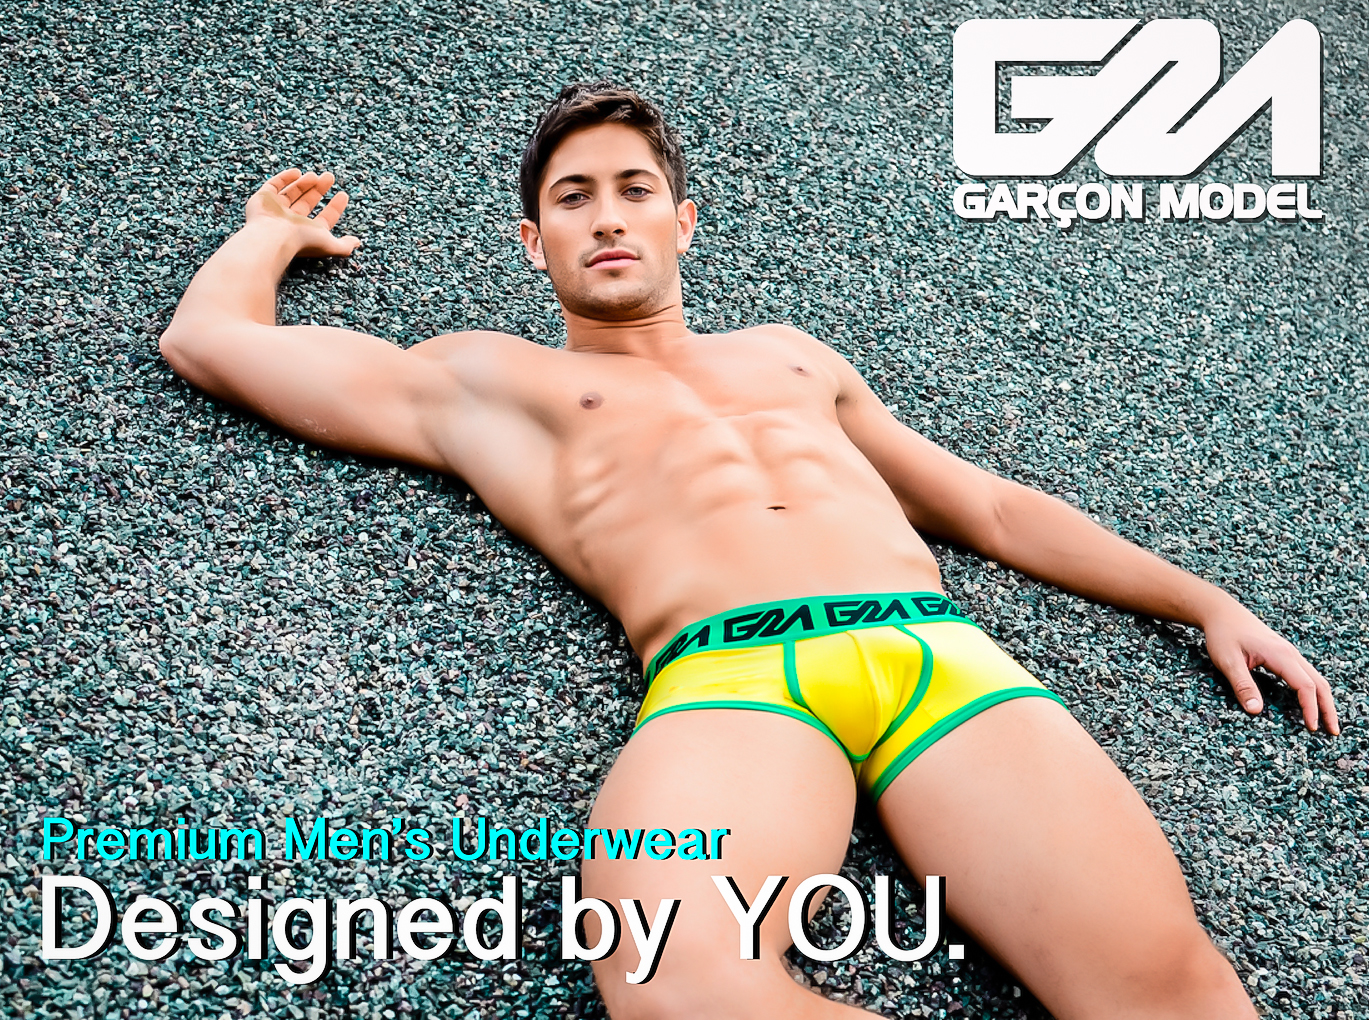 Garcon Model - Interview